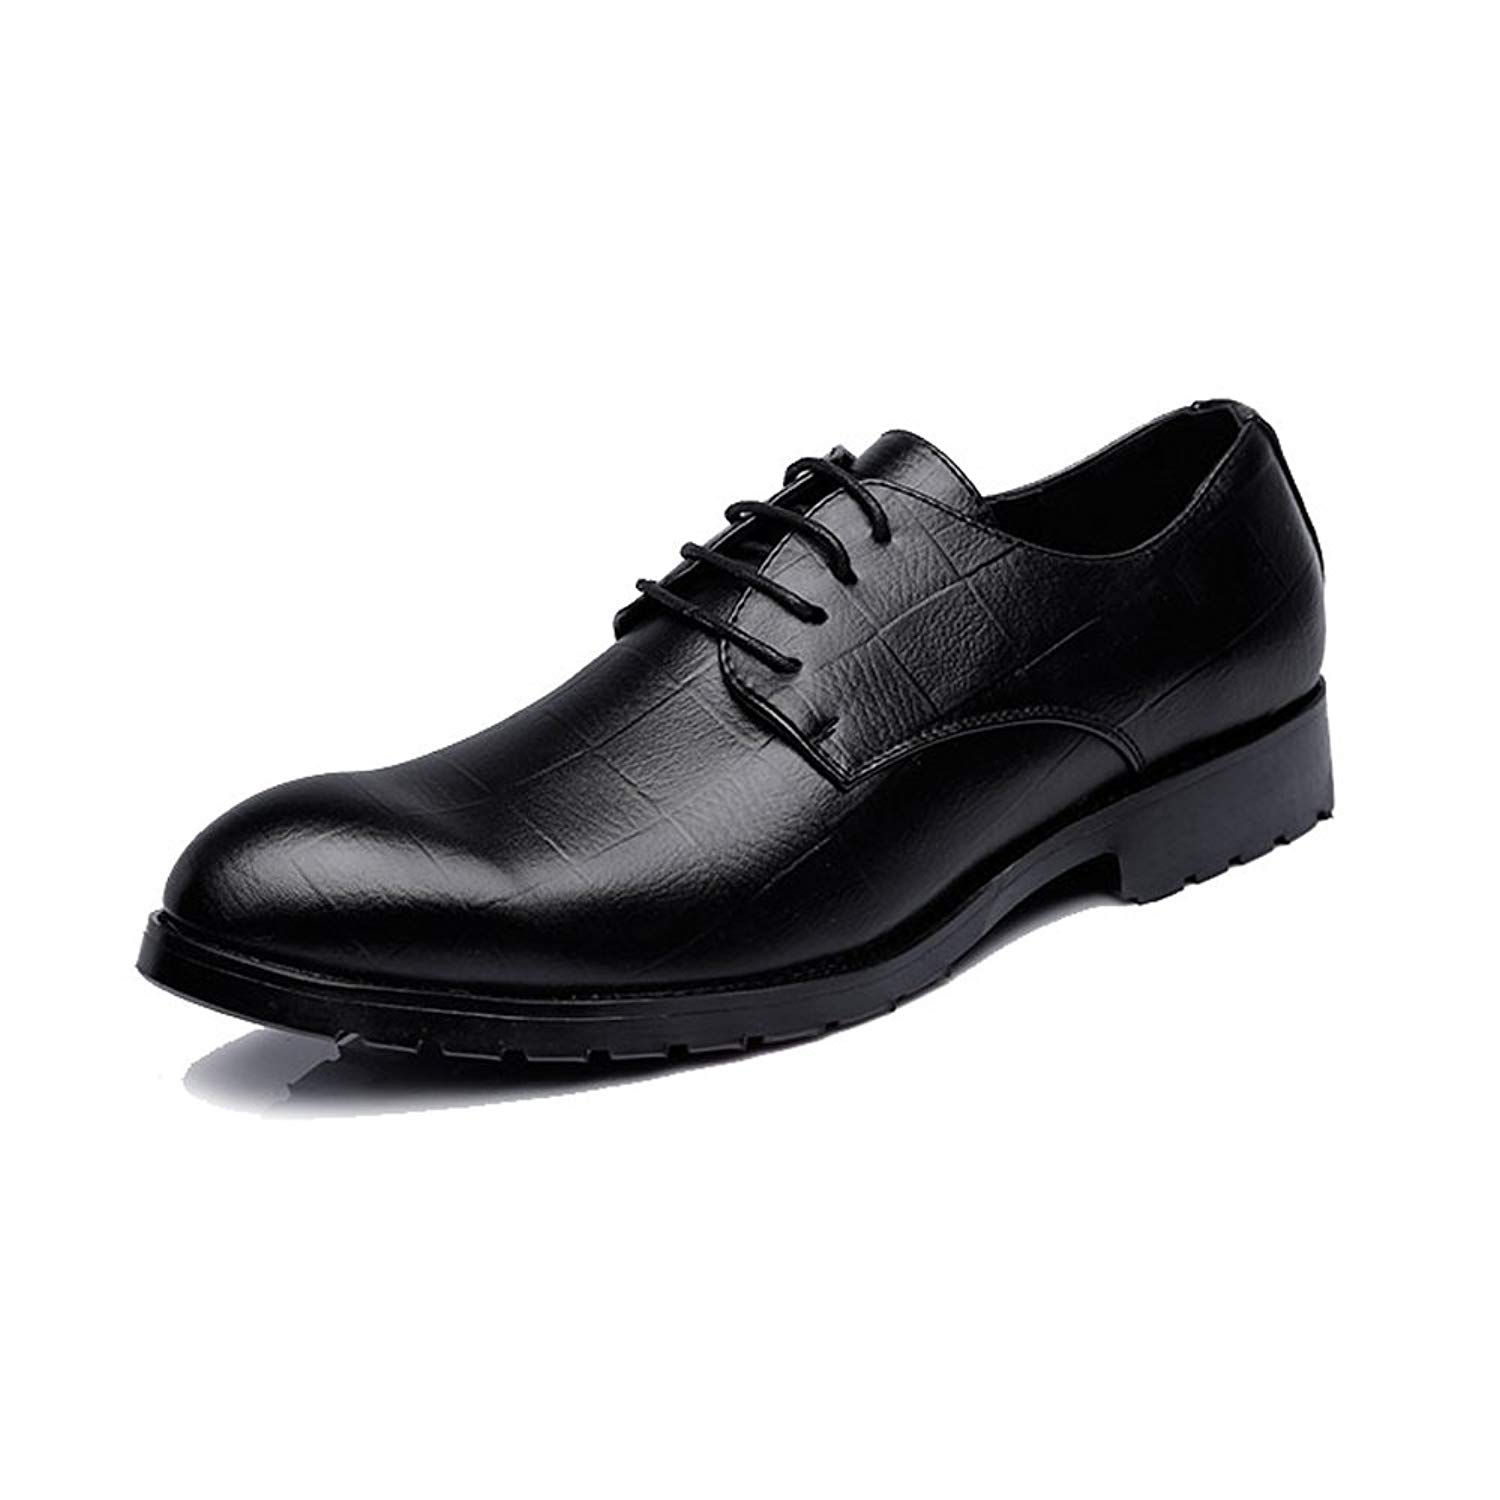 2018 Oxfords Shoes, Men's Business PU Leather Shoes Classic Lace up Loafers Square Texture Low Top Oxfords